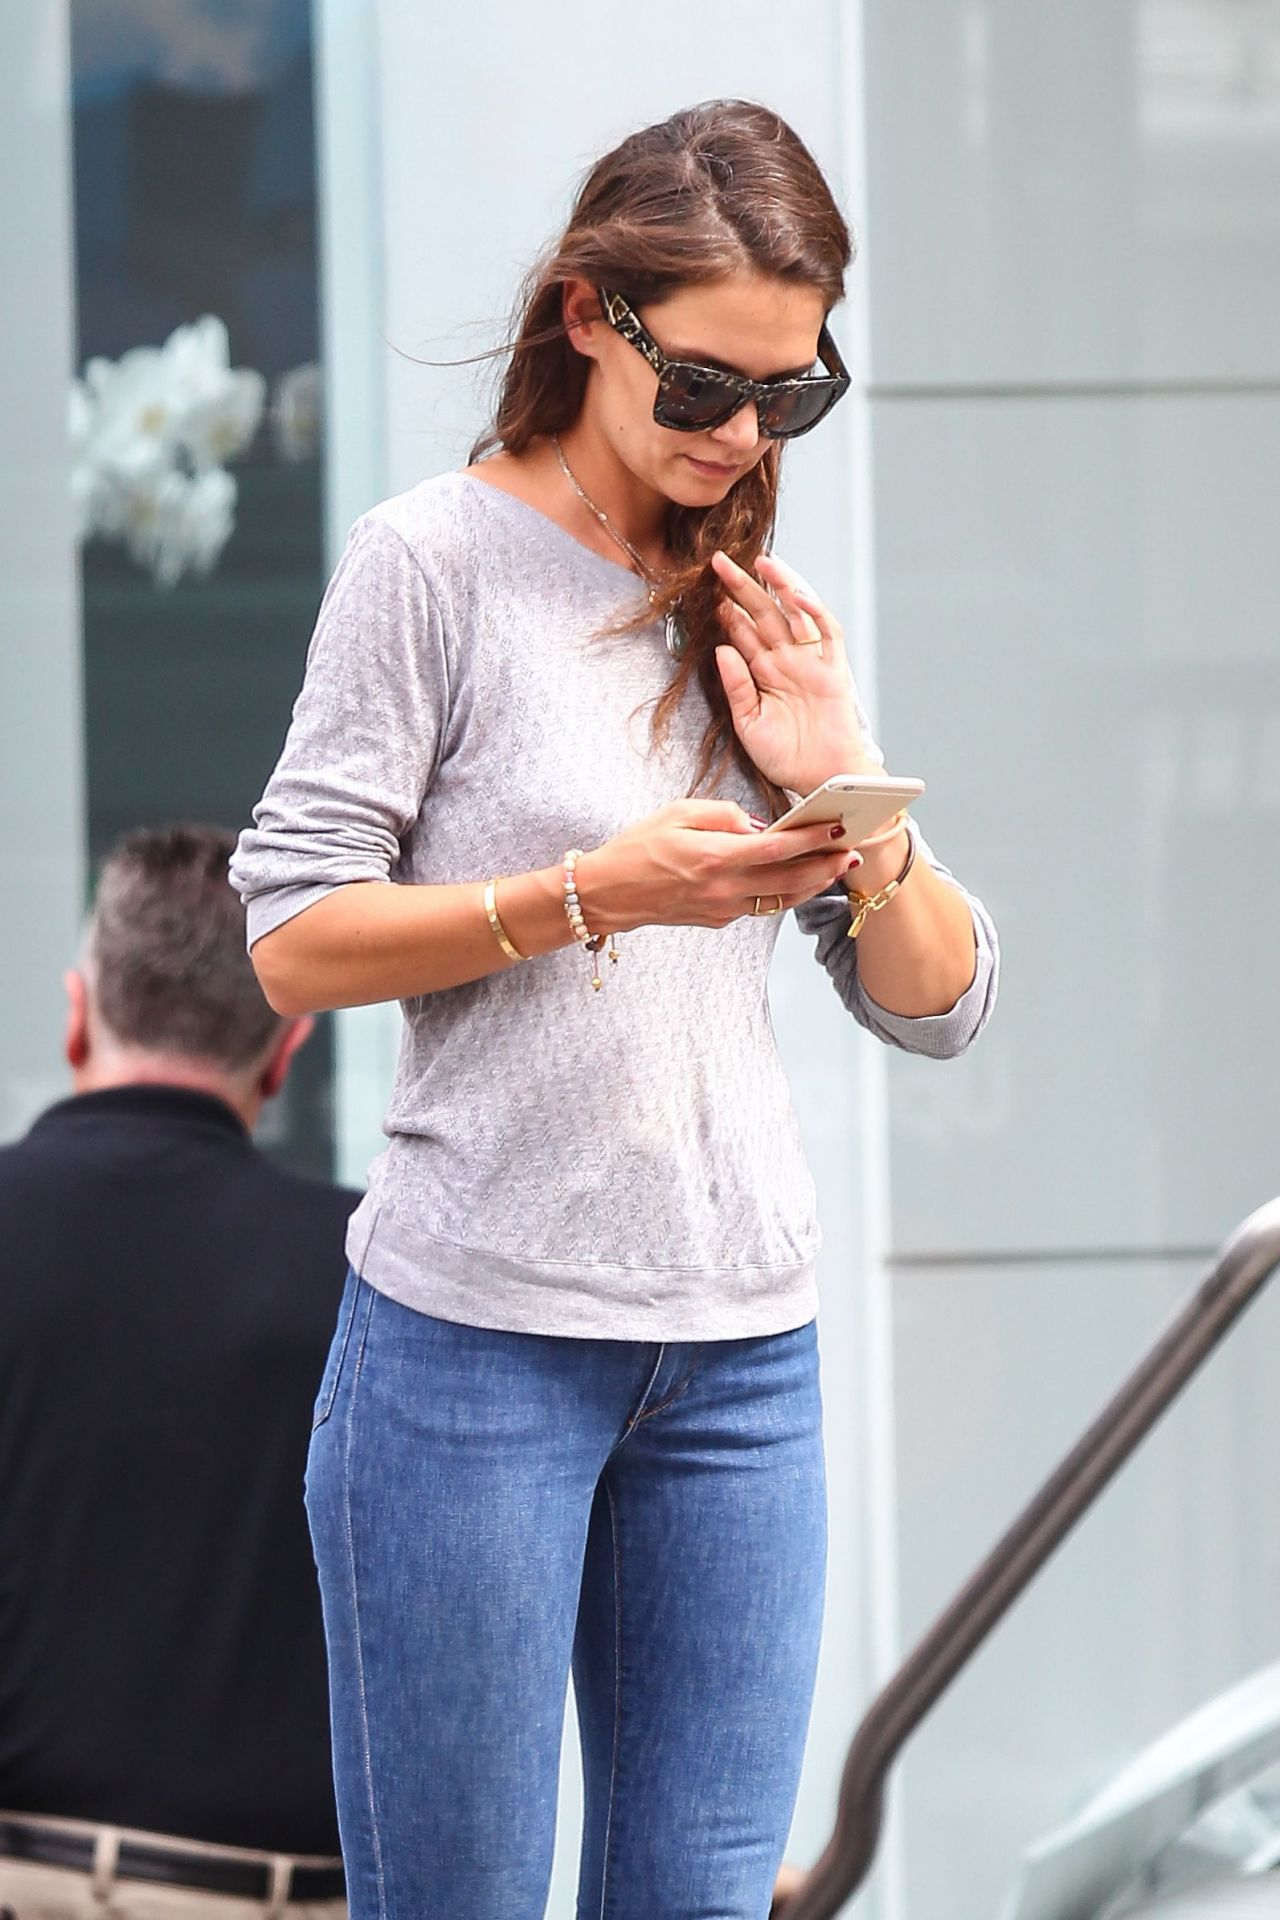 Boyfriend jeans celebrity style red